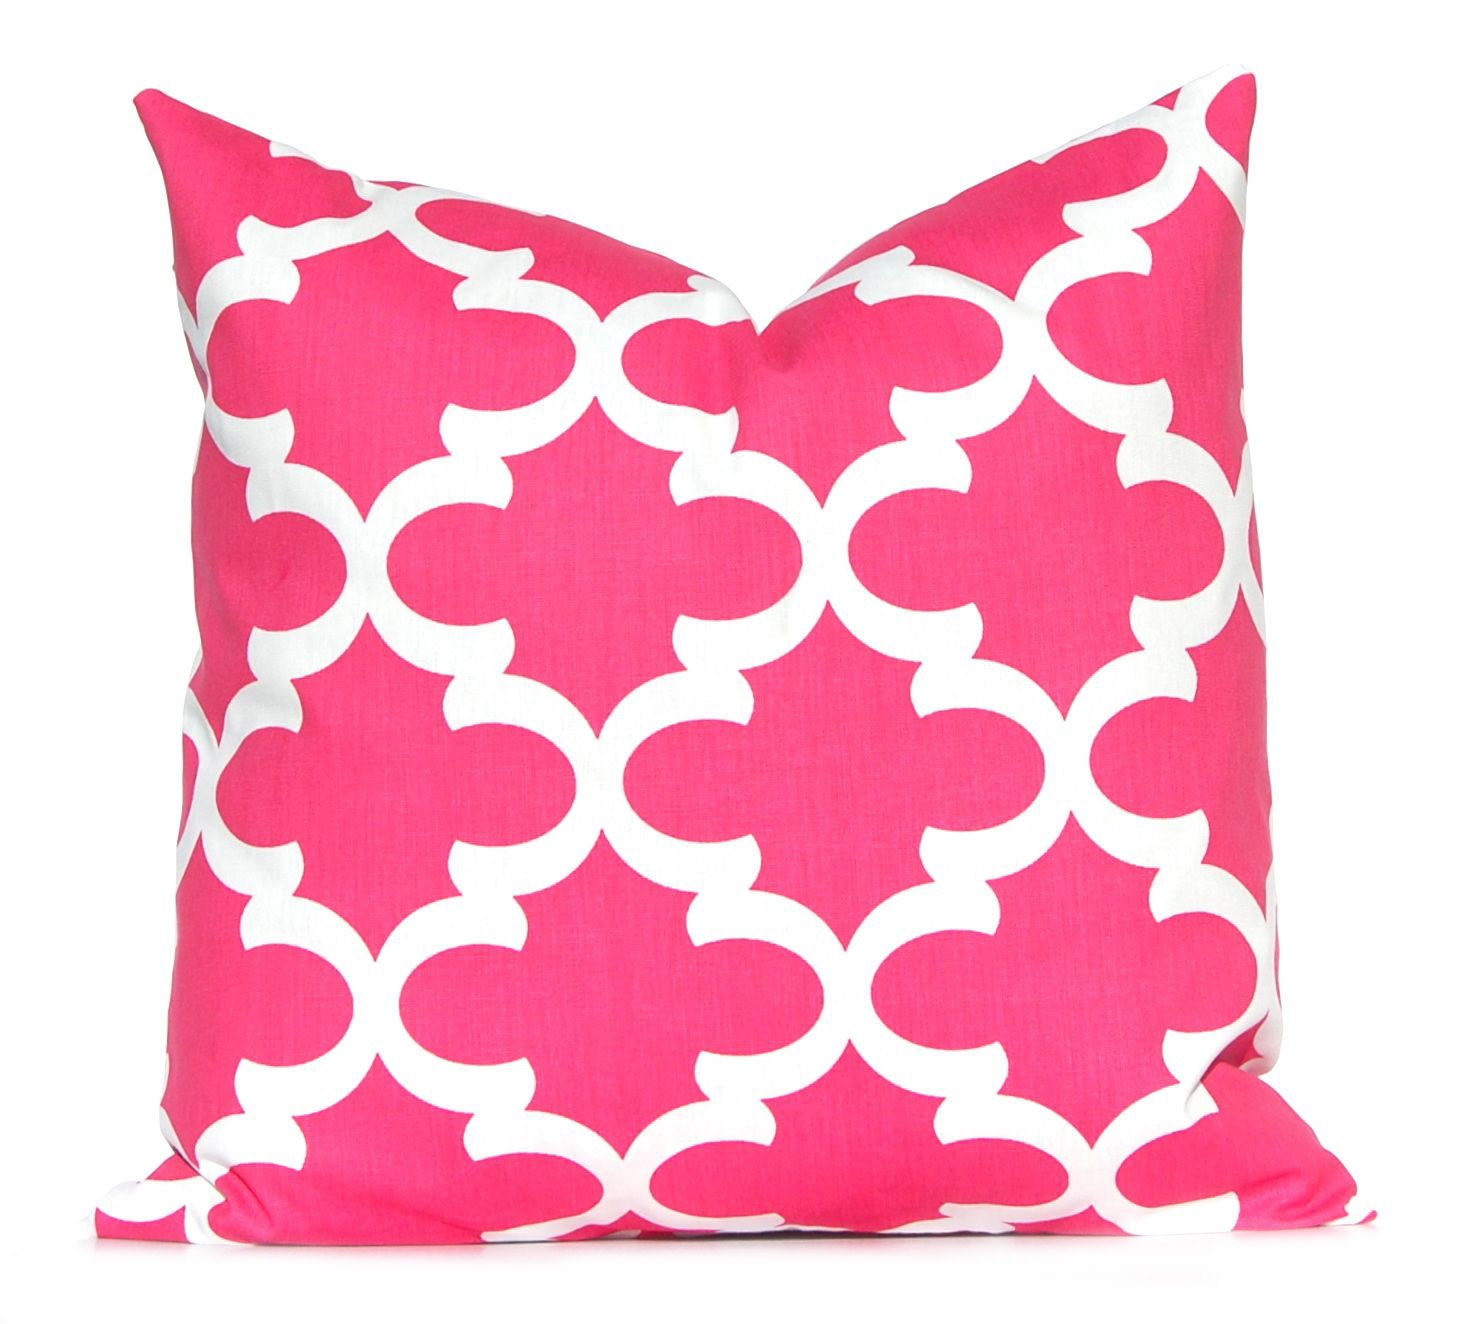 pink pillow decorative pillow hot pink throw pillow cover. Black Bedroom Furniture Sets. Home Design Ideas